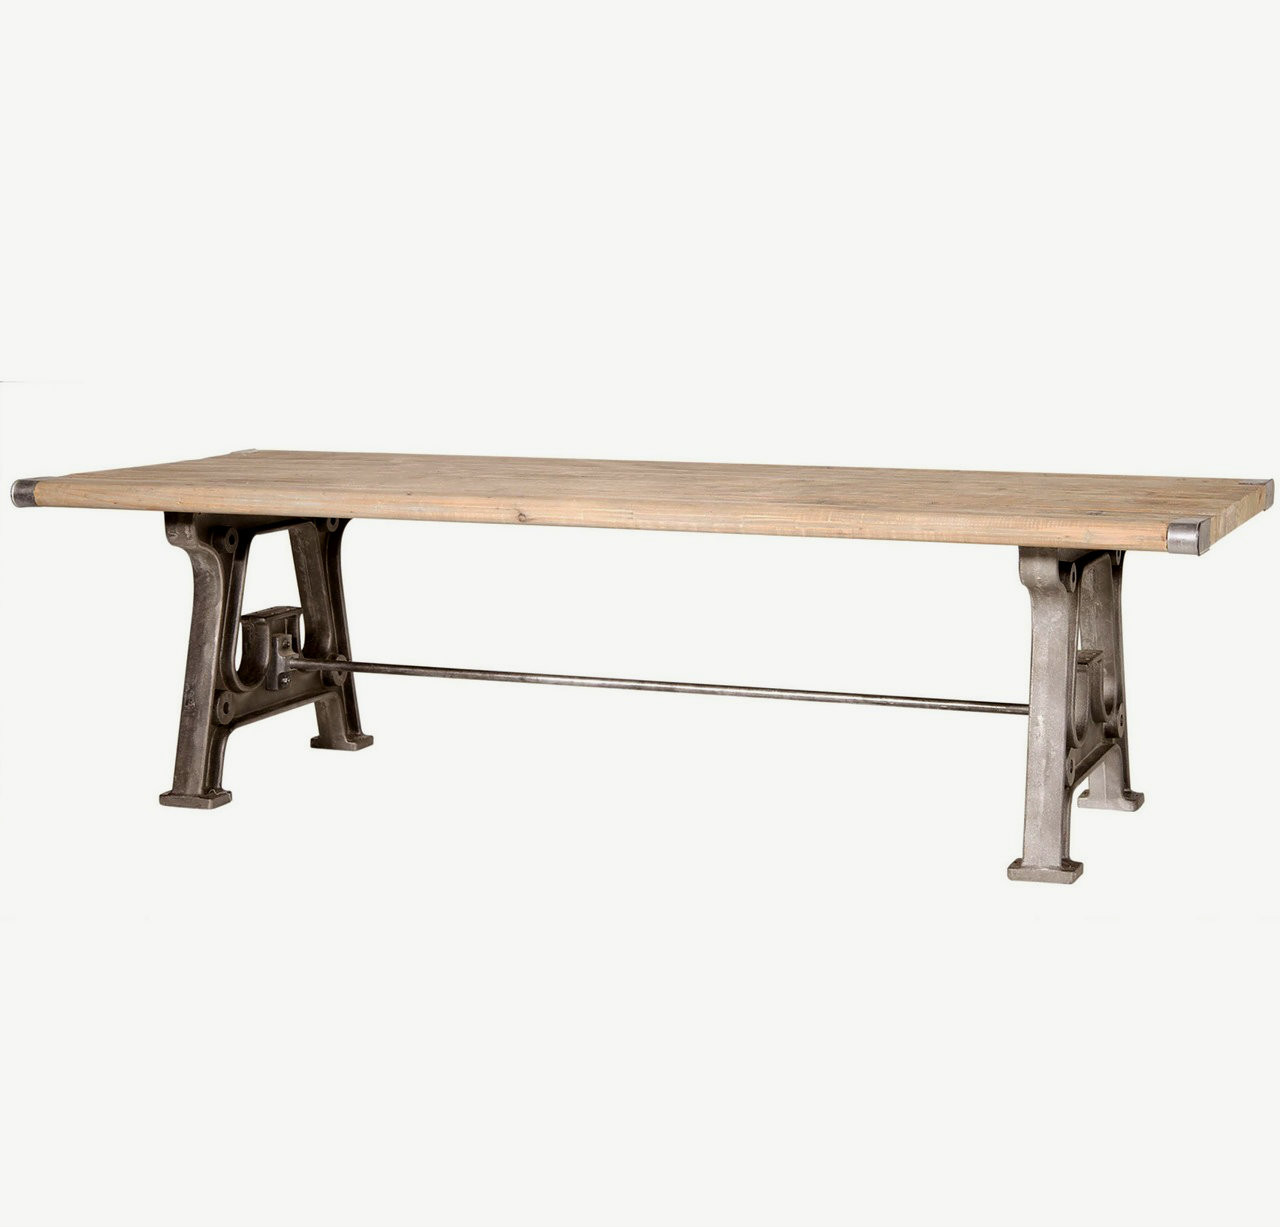 Barnwood Dining Room Tables: Barnwood Industrial Dining Room Table 86""